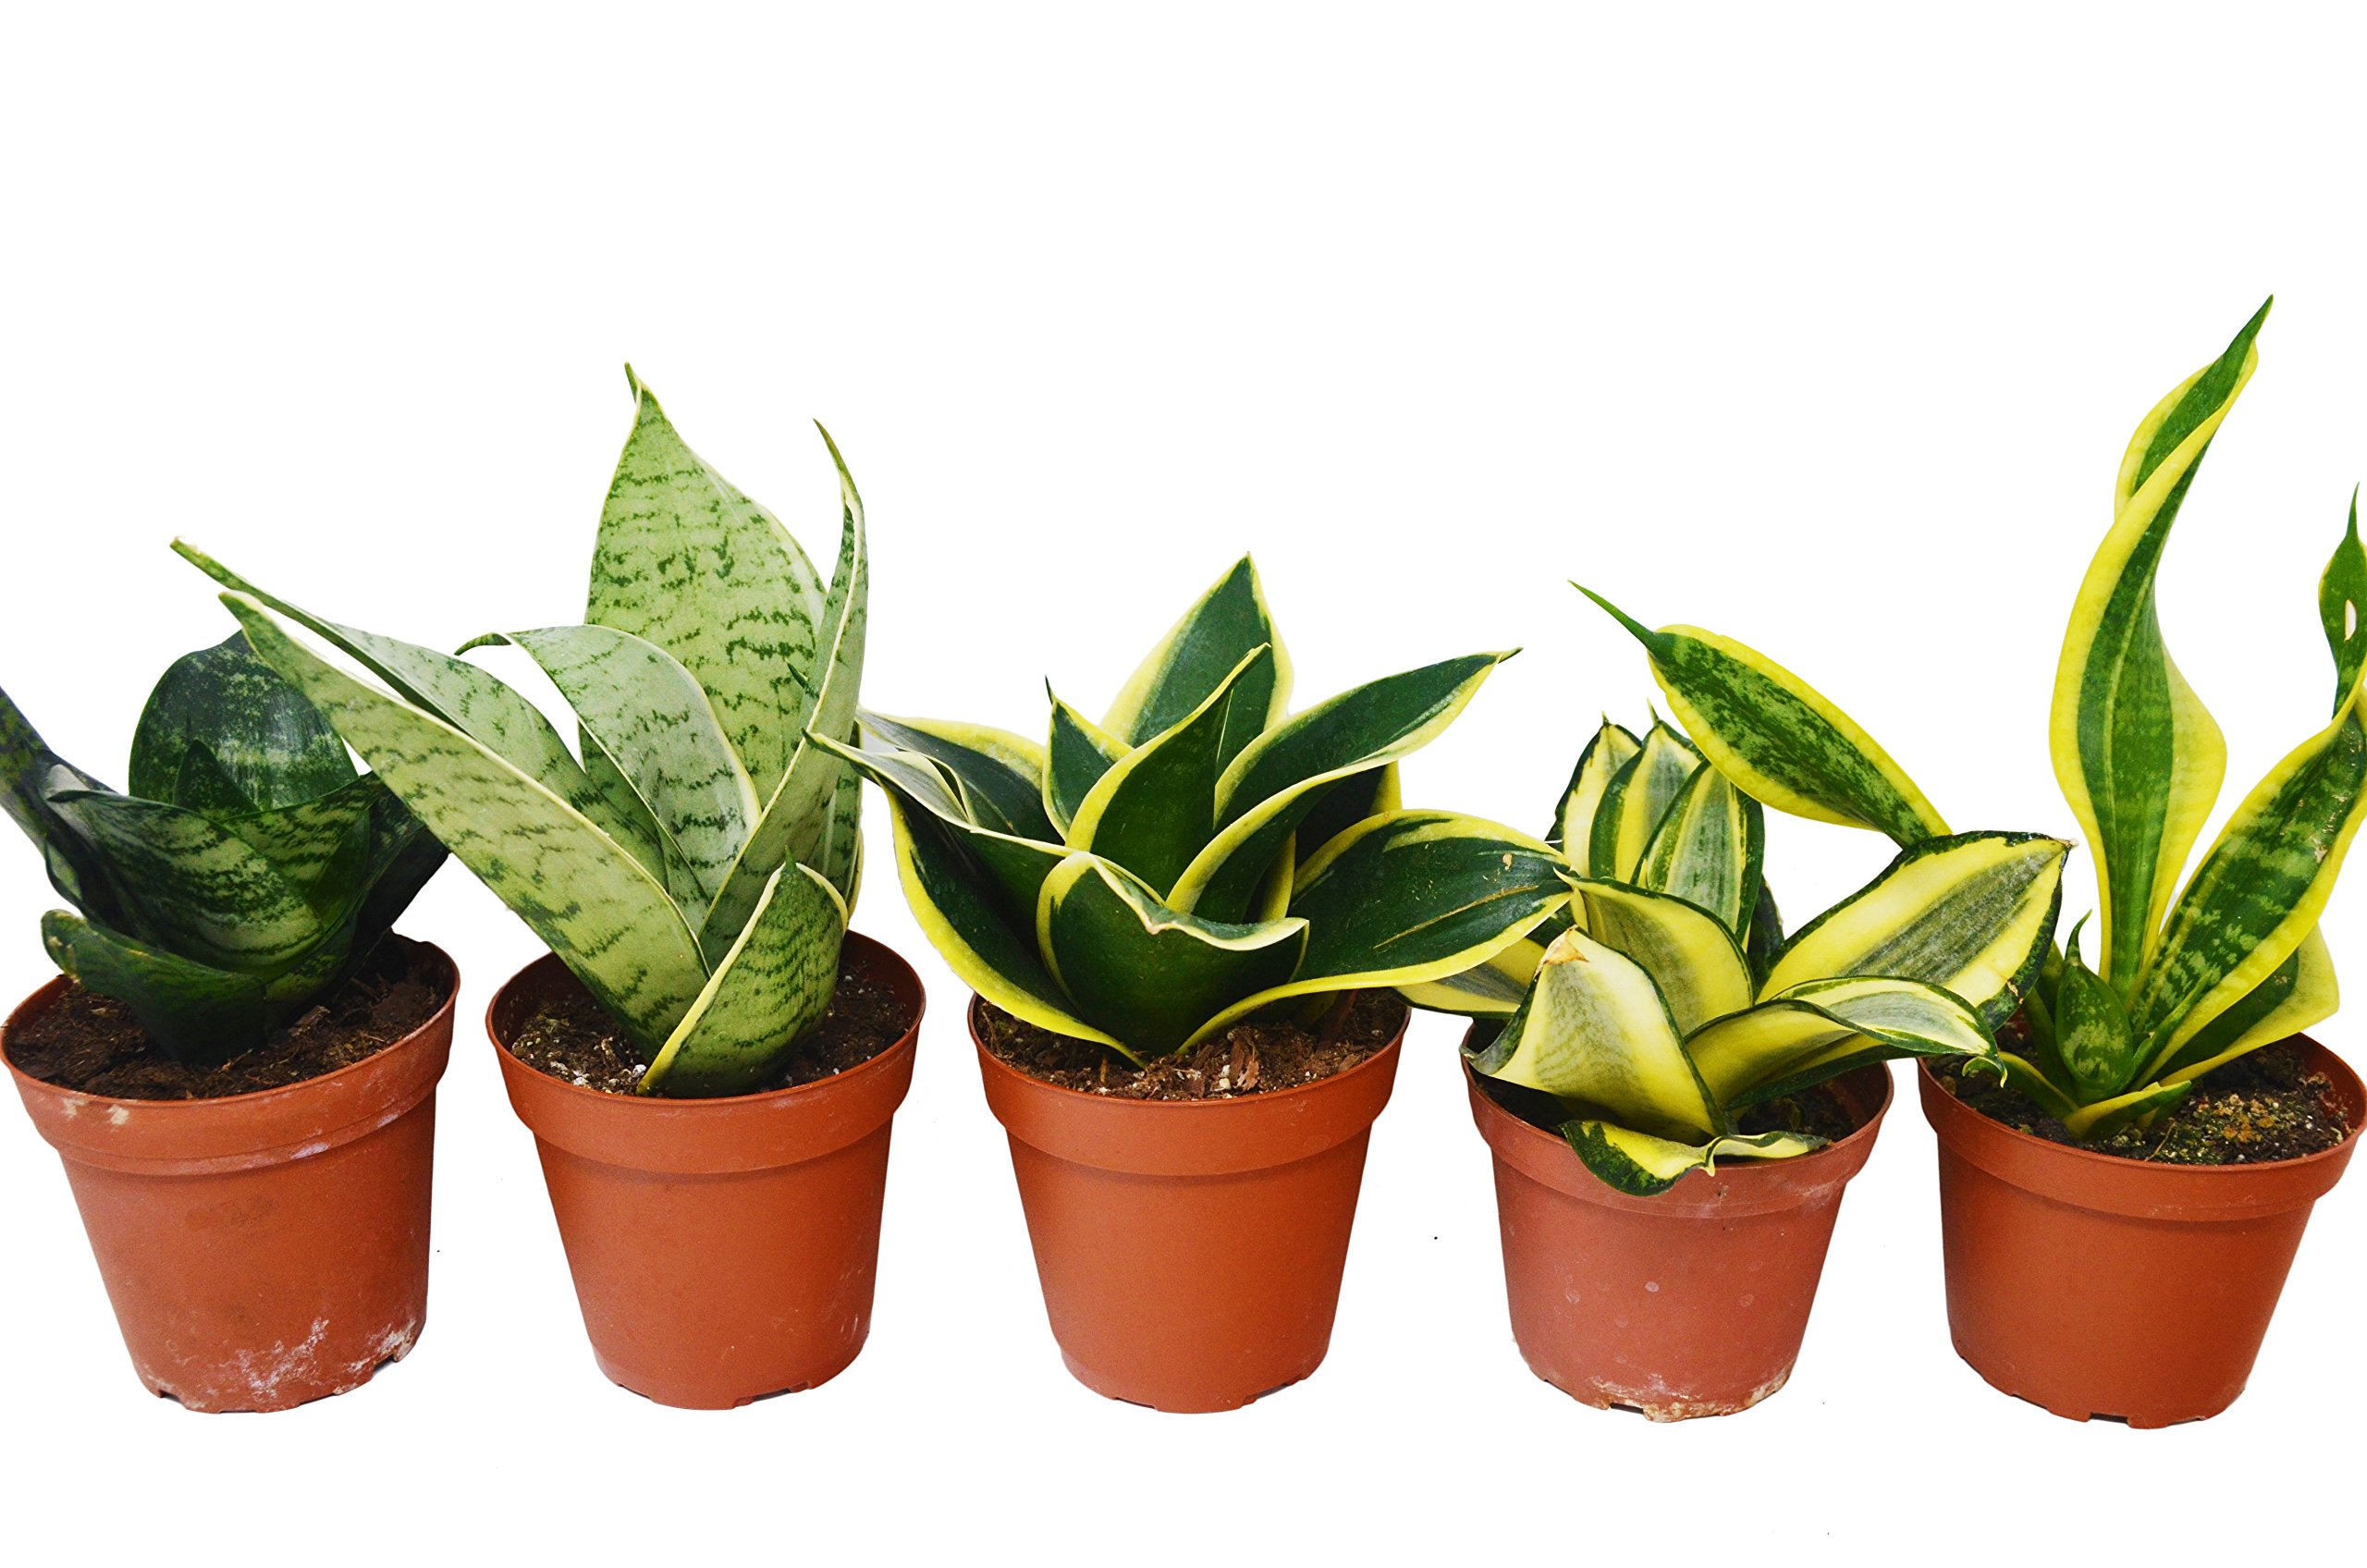 5 Different Snake Plants in 4'' Pots - Sansevieria - Live Plant - FREE Care Guide